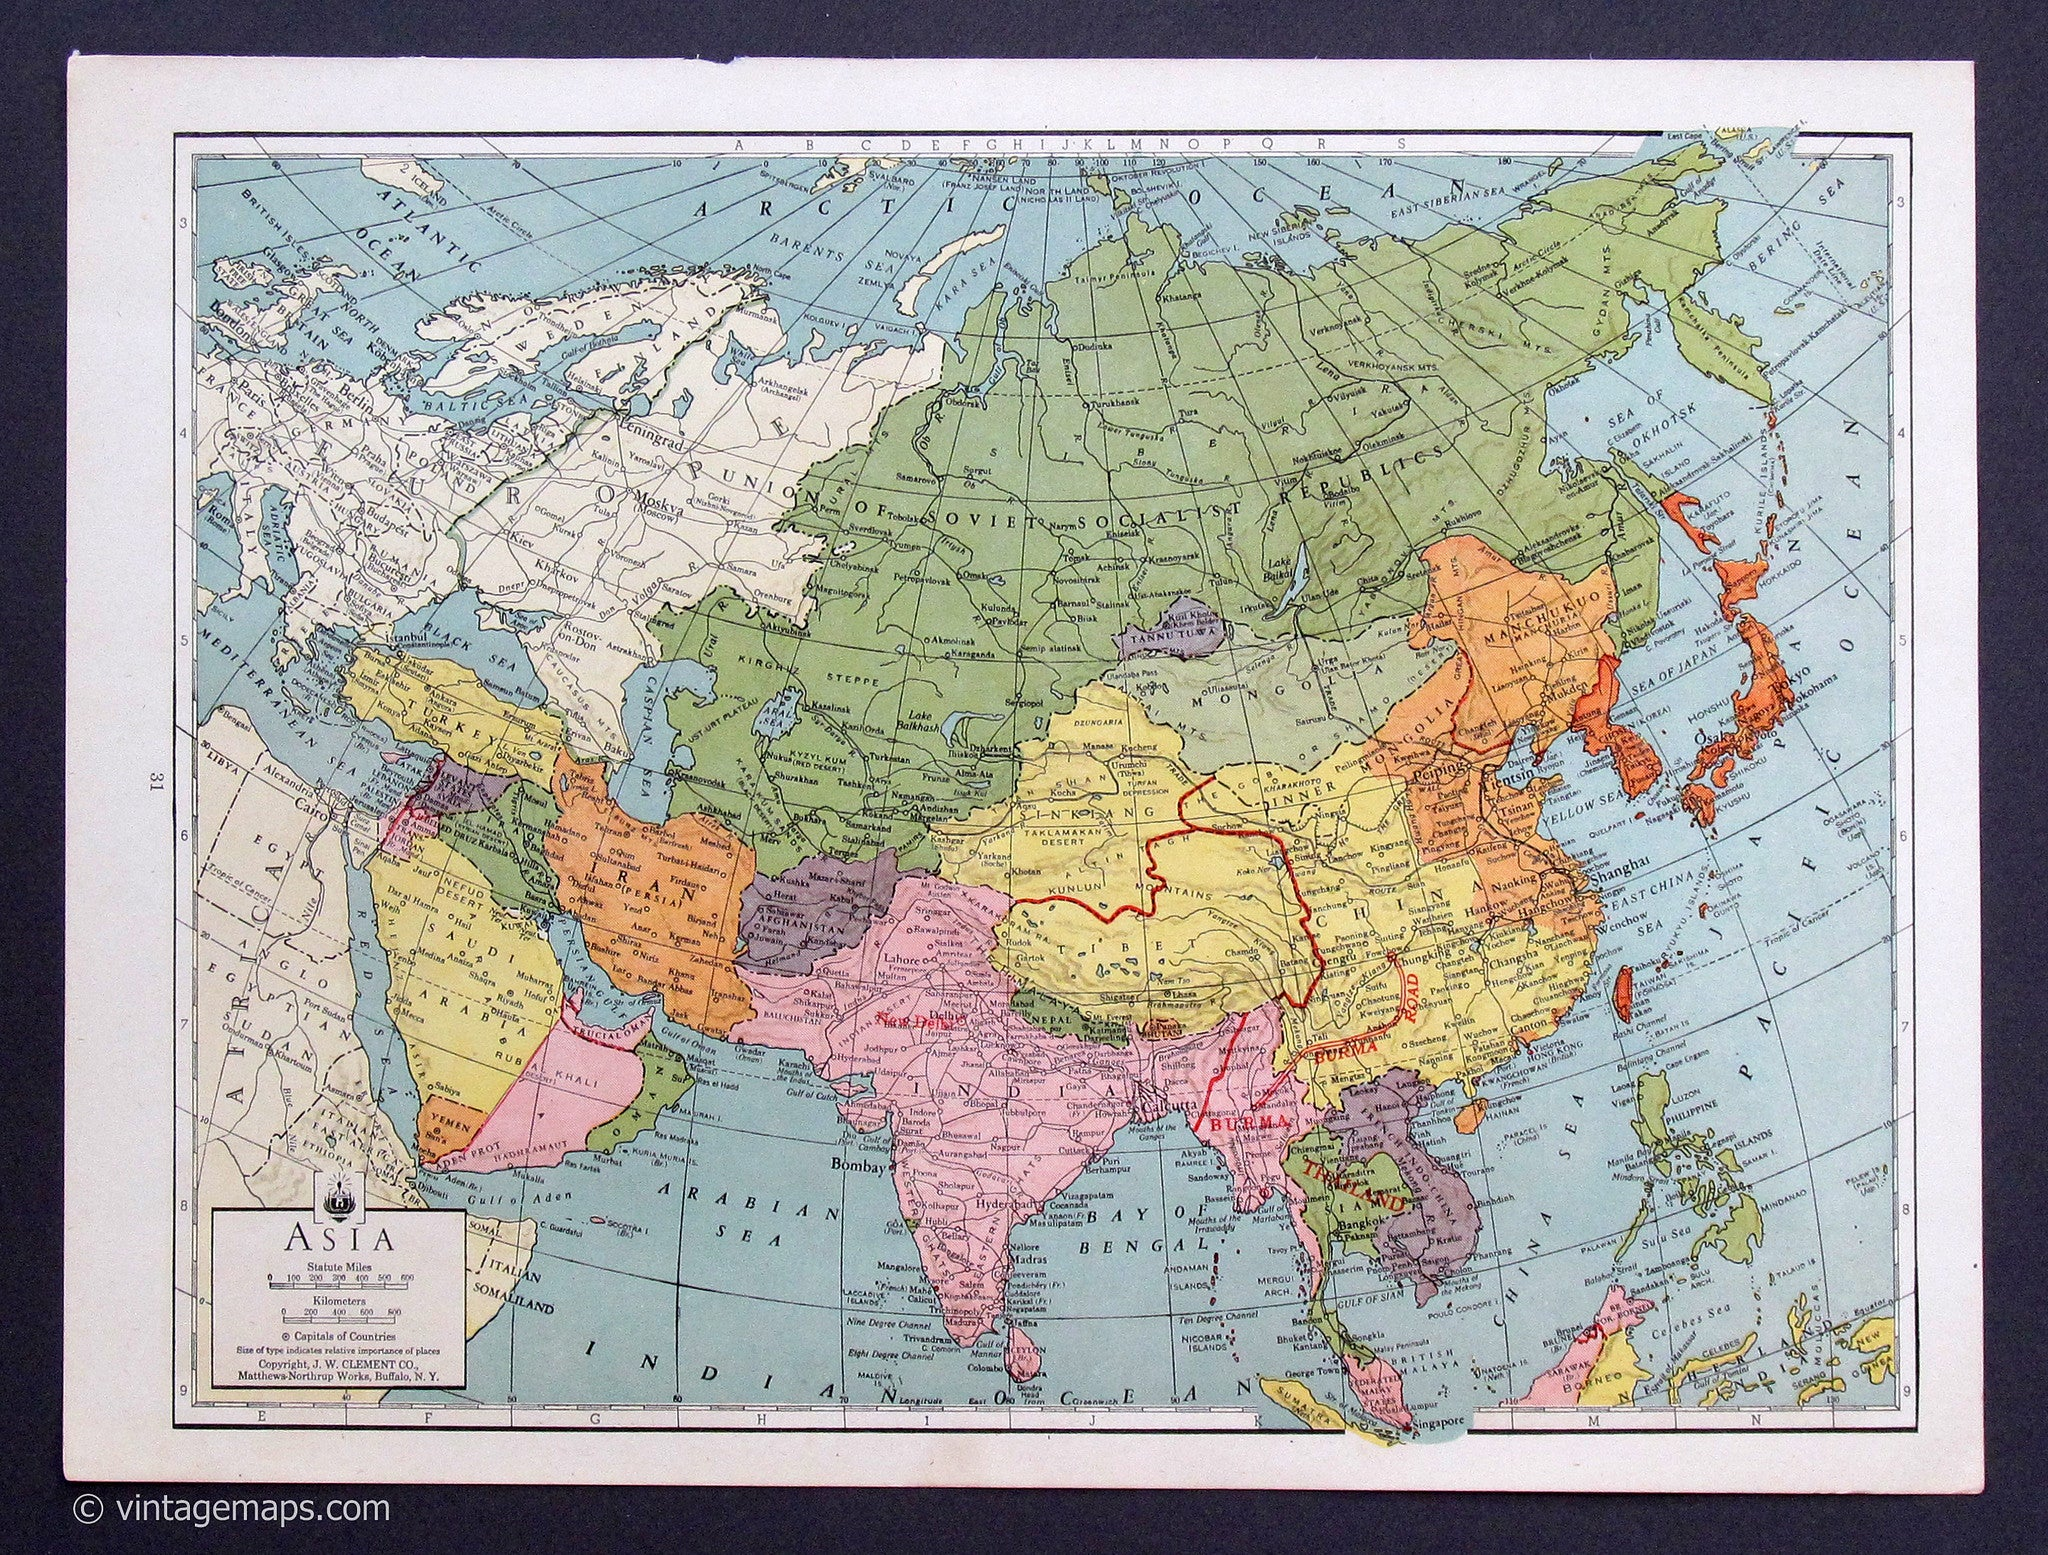 Map Of Asia To Print.Asia 1943 Vintage Maps